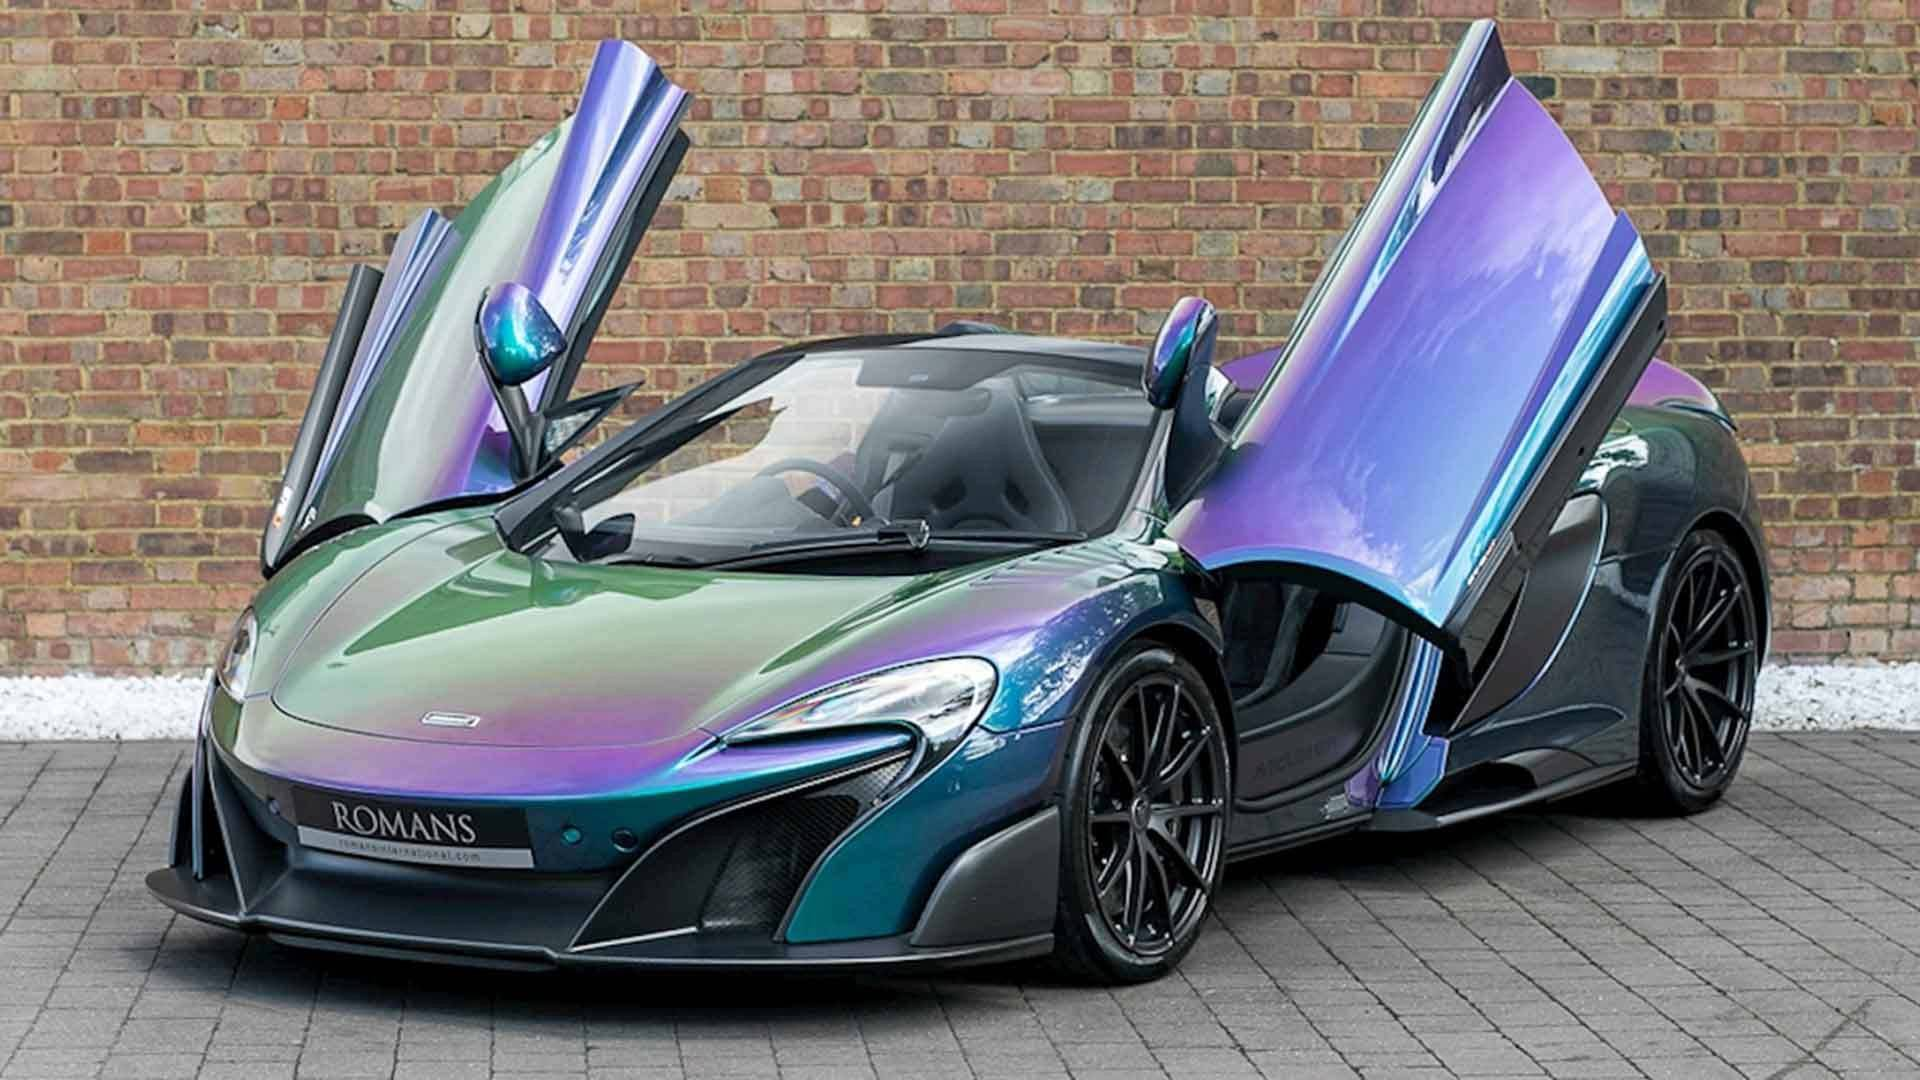 Cost To Paint A Car >> The Paint On This Mclaren 675lt Cost More Than A New Civic Type R